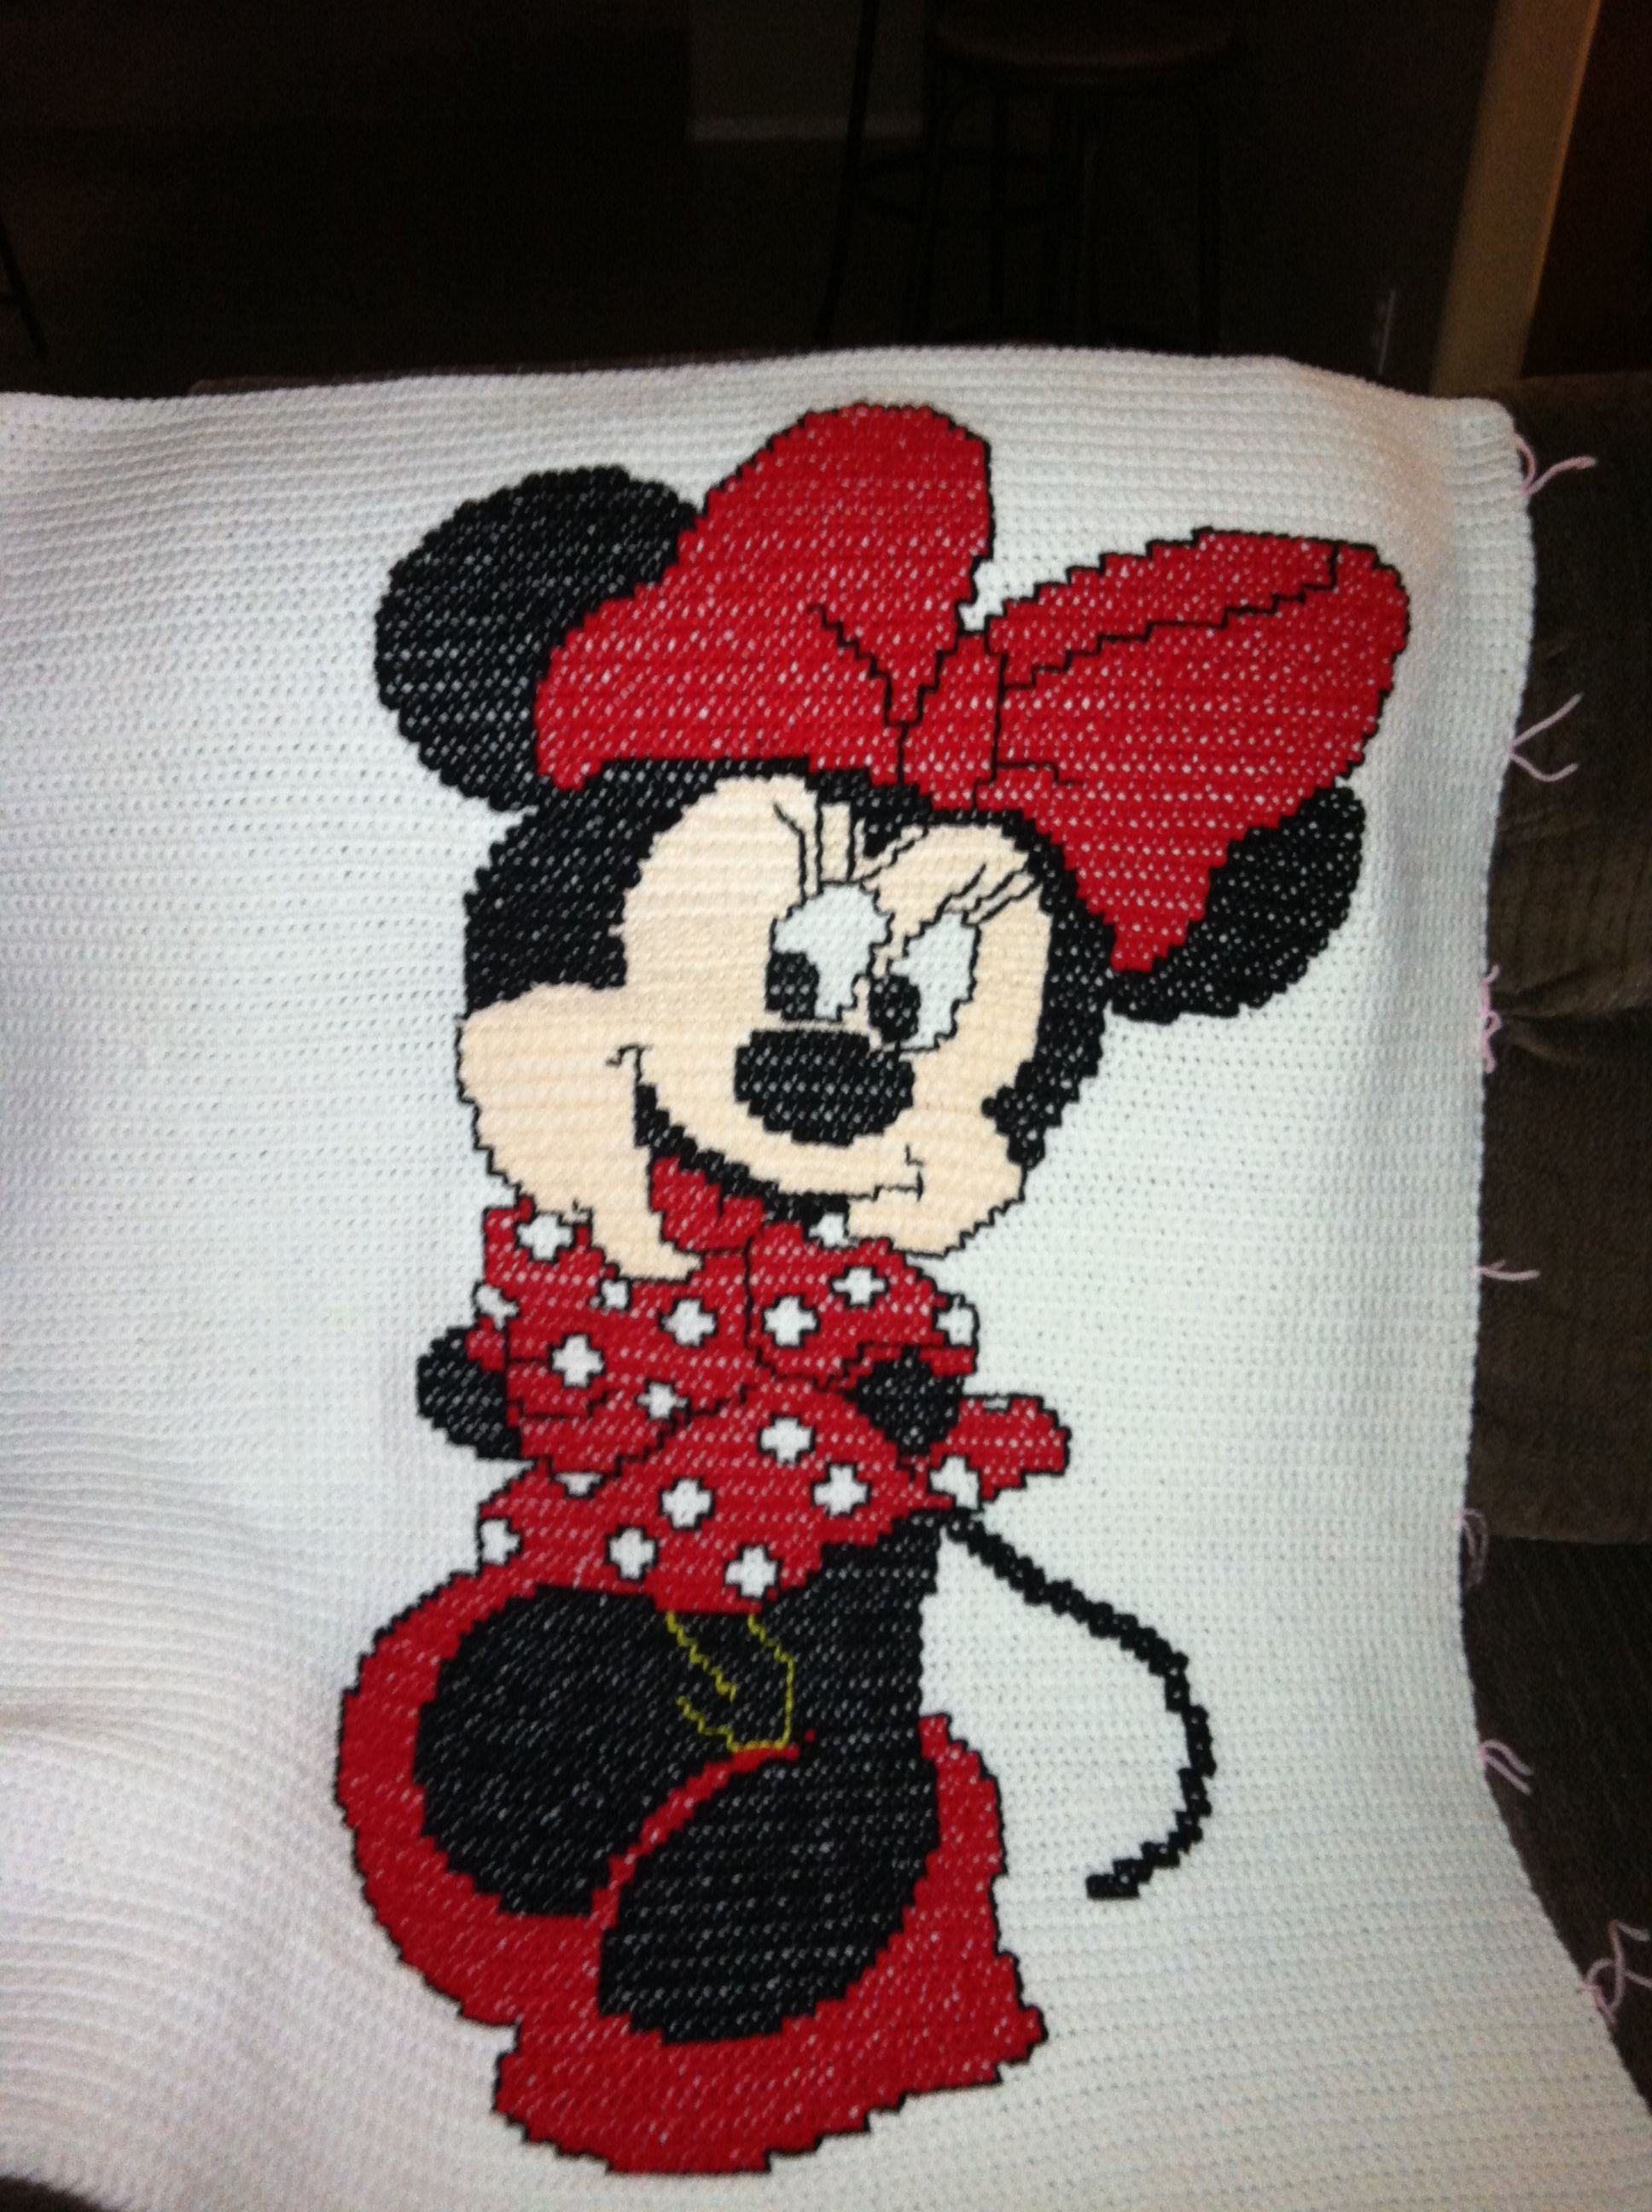 Crochet Pattern For Minnie Mouse Blanket : minnie mouse crochet afghan patterns